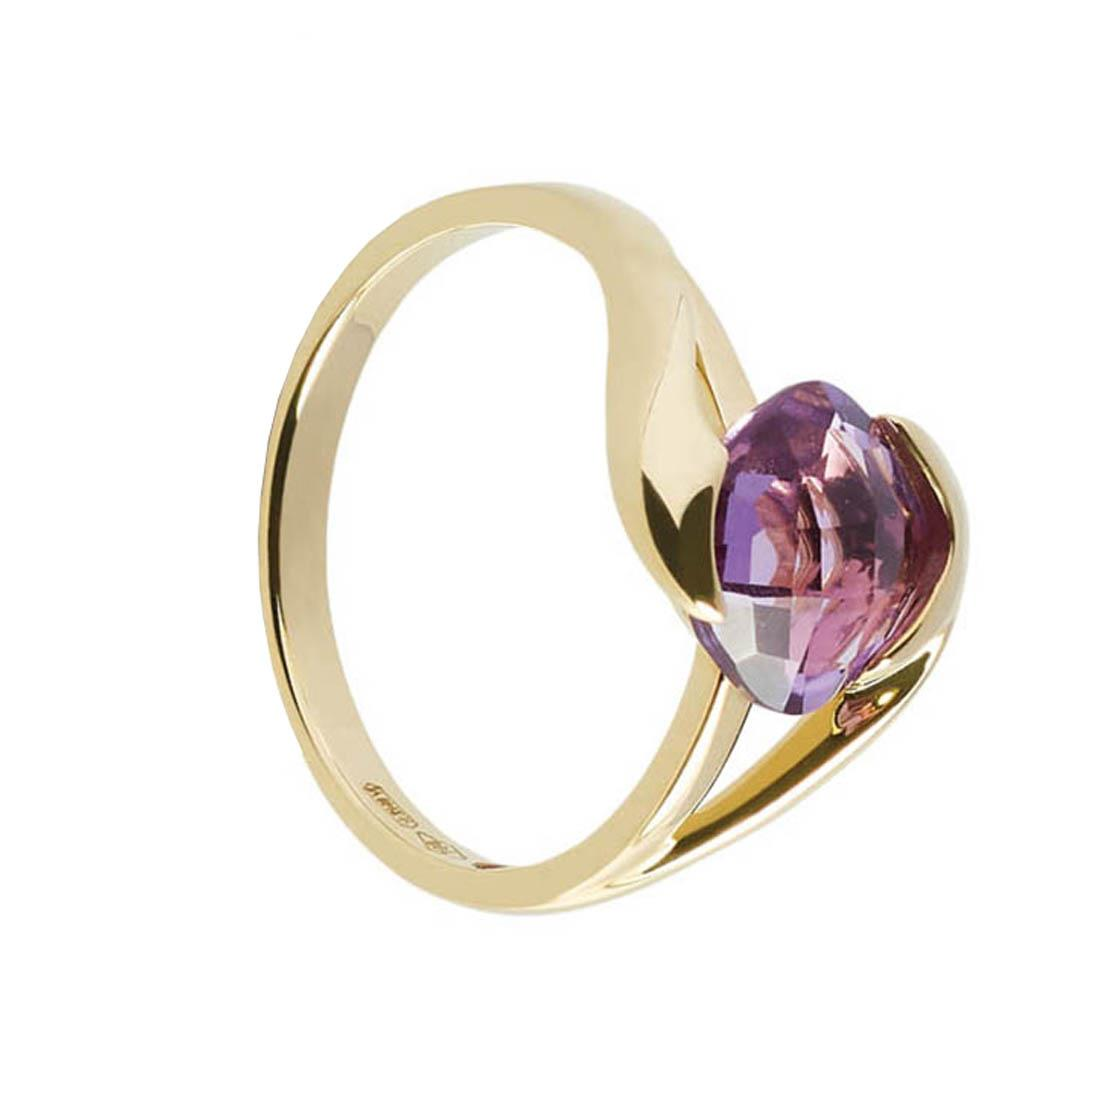 Yellow gold ring with 2.25 ct square briolette amethyst. 